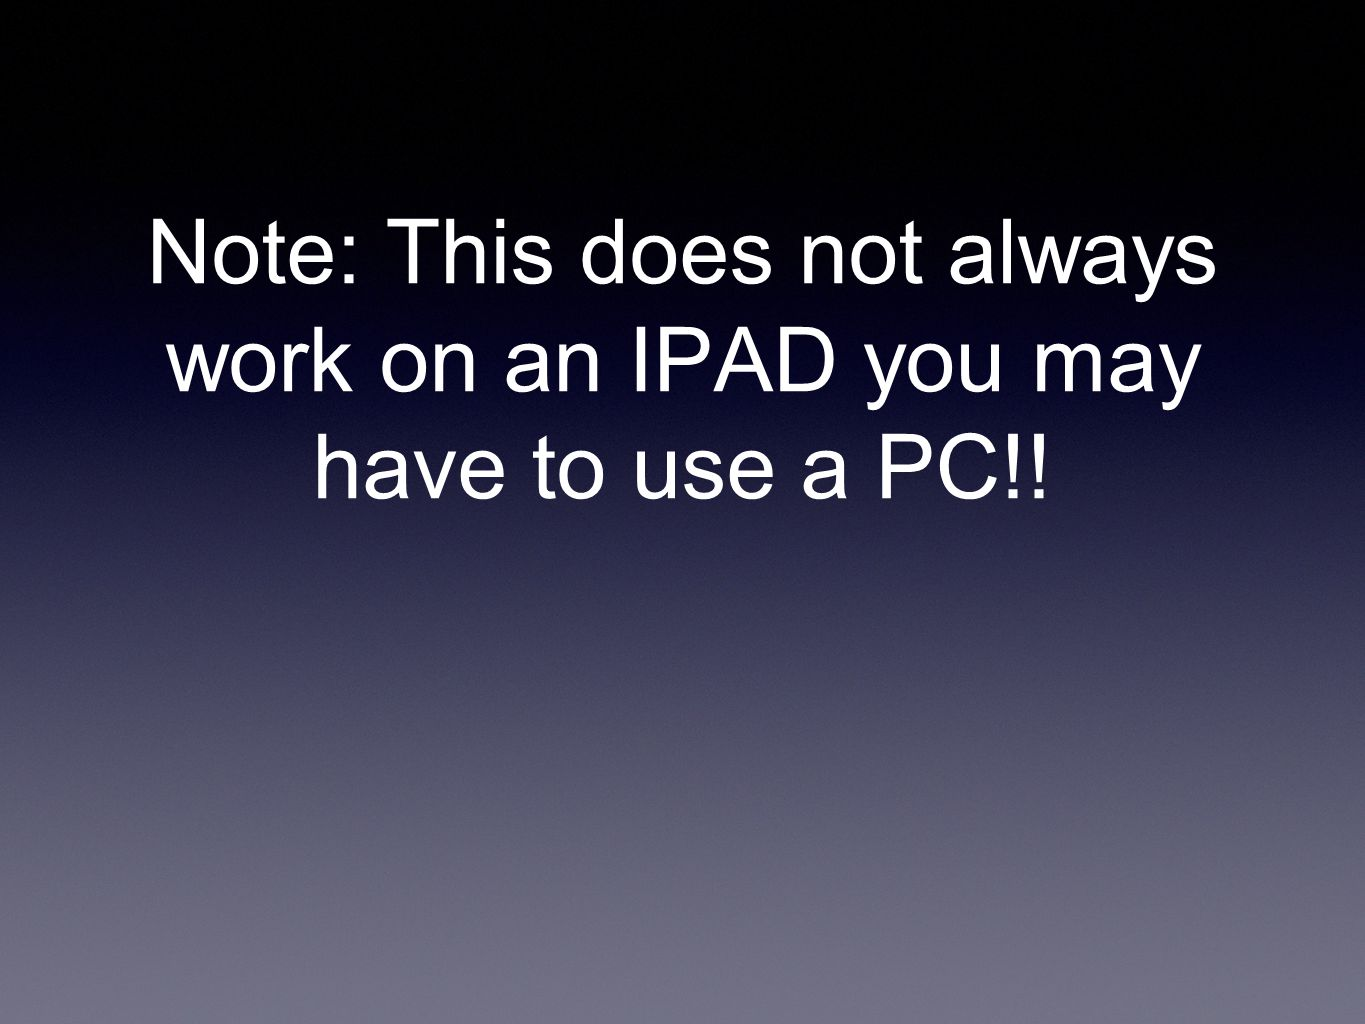 Note: This does not always work on an IPAD you may have to use a PC!!